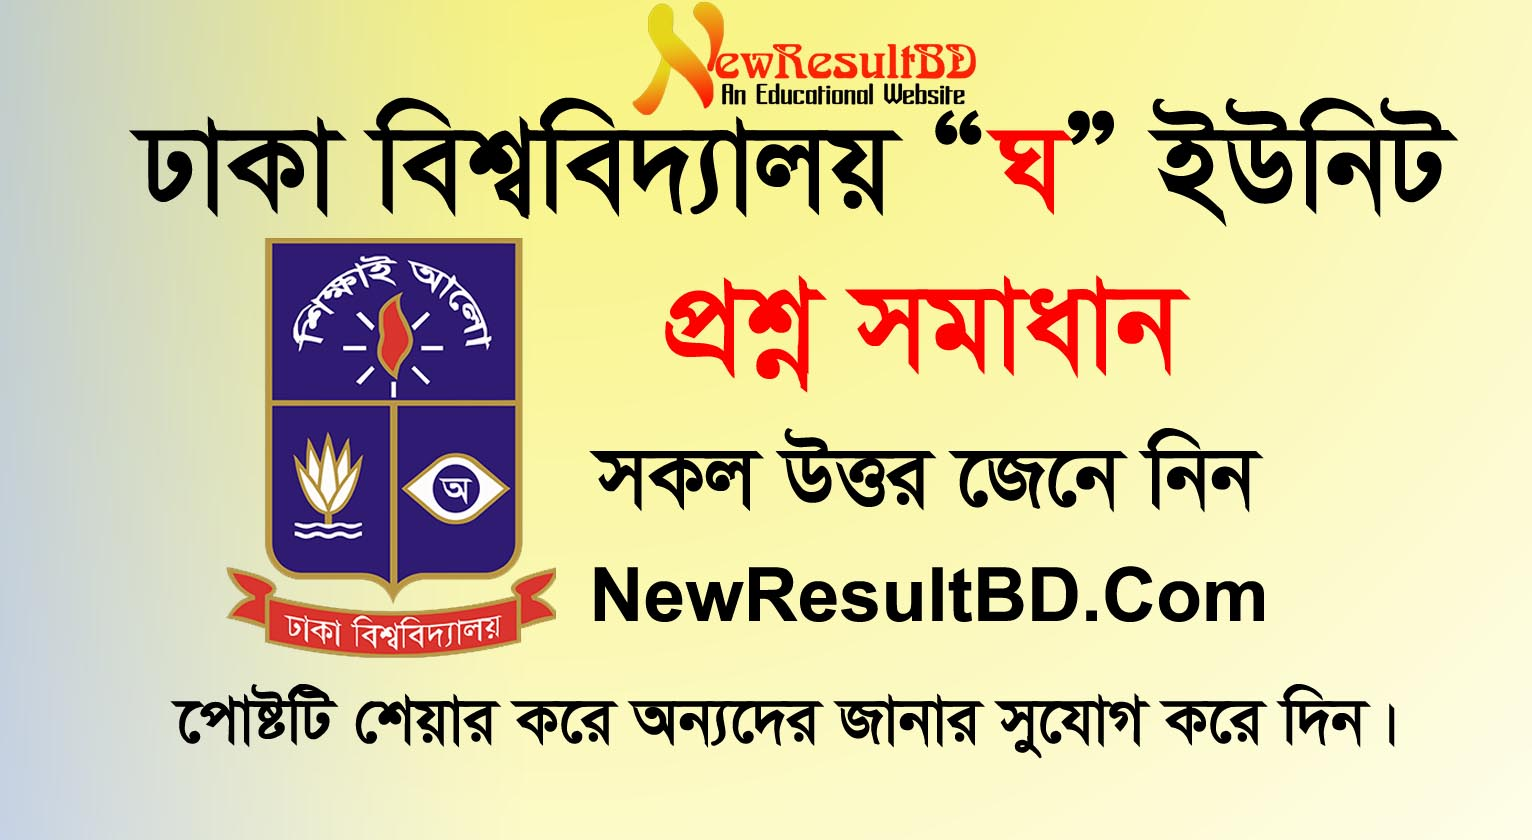 Dhaka University D Unit Question Solution 2019, DU GHA Unit Question Solve, DU D Unit Solutions, DU D unit GK, Bangla, Englisgh Answers, Dhaka Varsity Solve